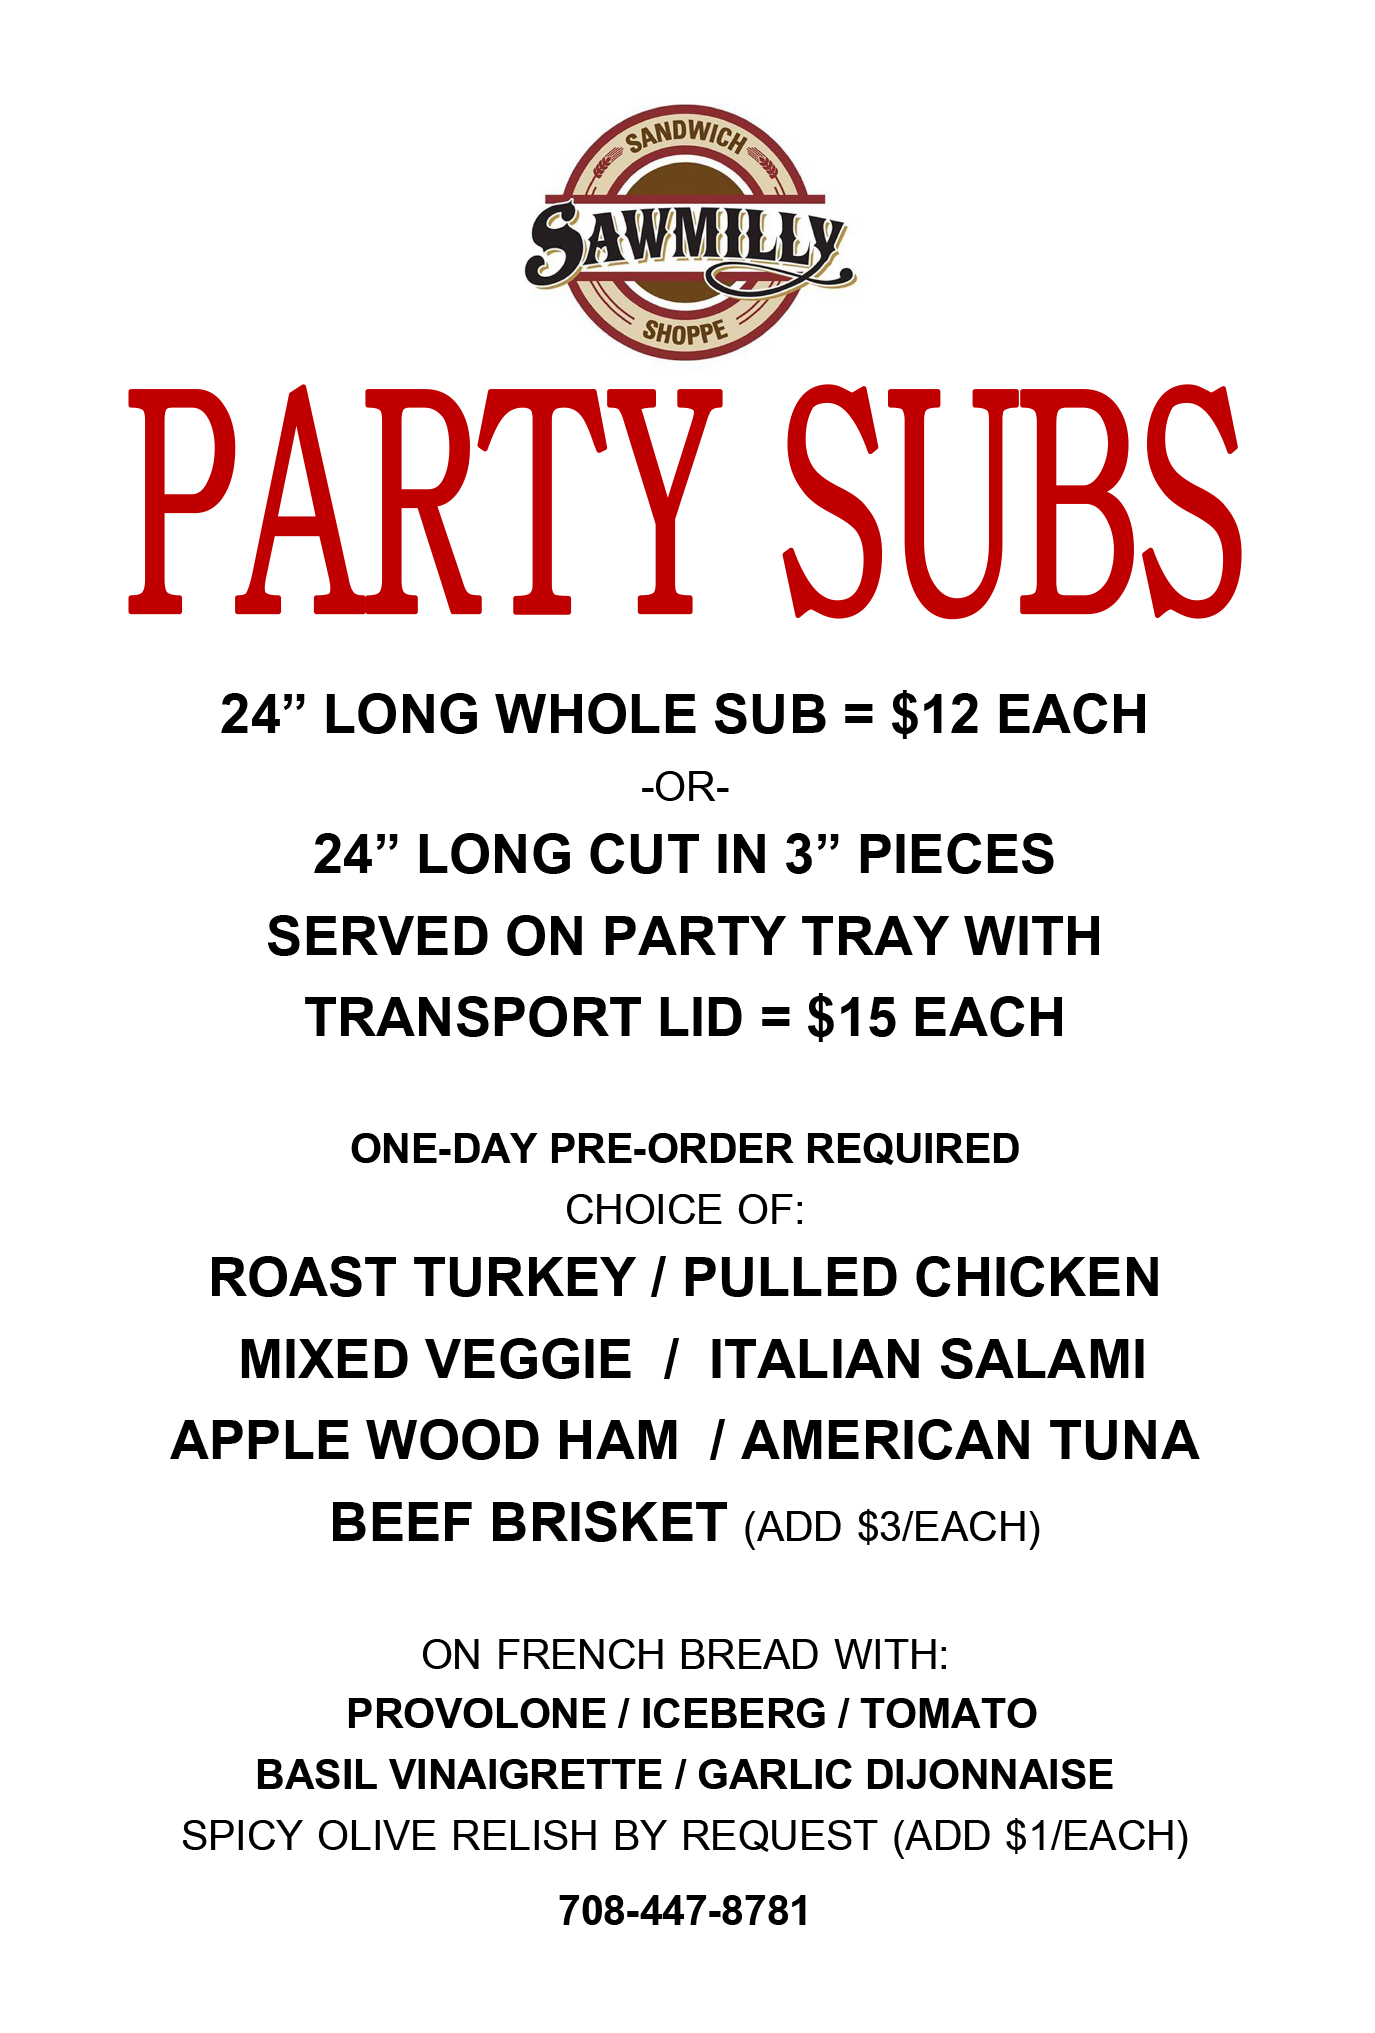 SAWMILLY PARTY SUBS POSTER.png